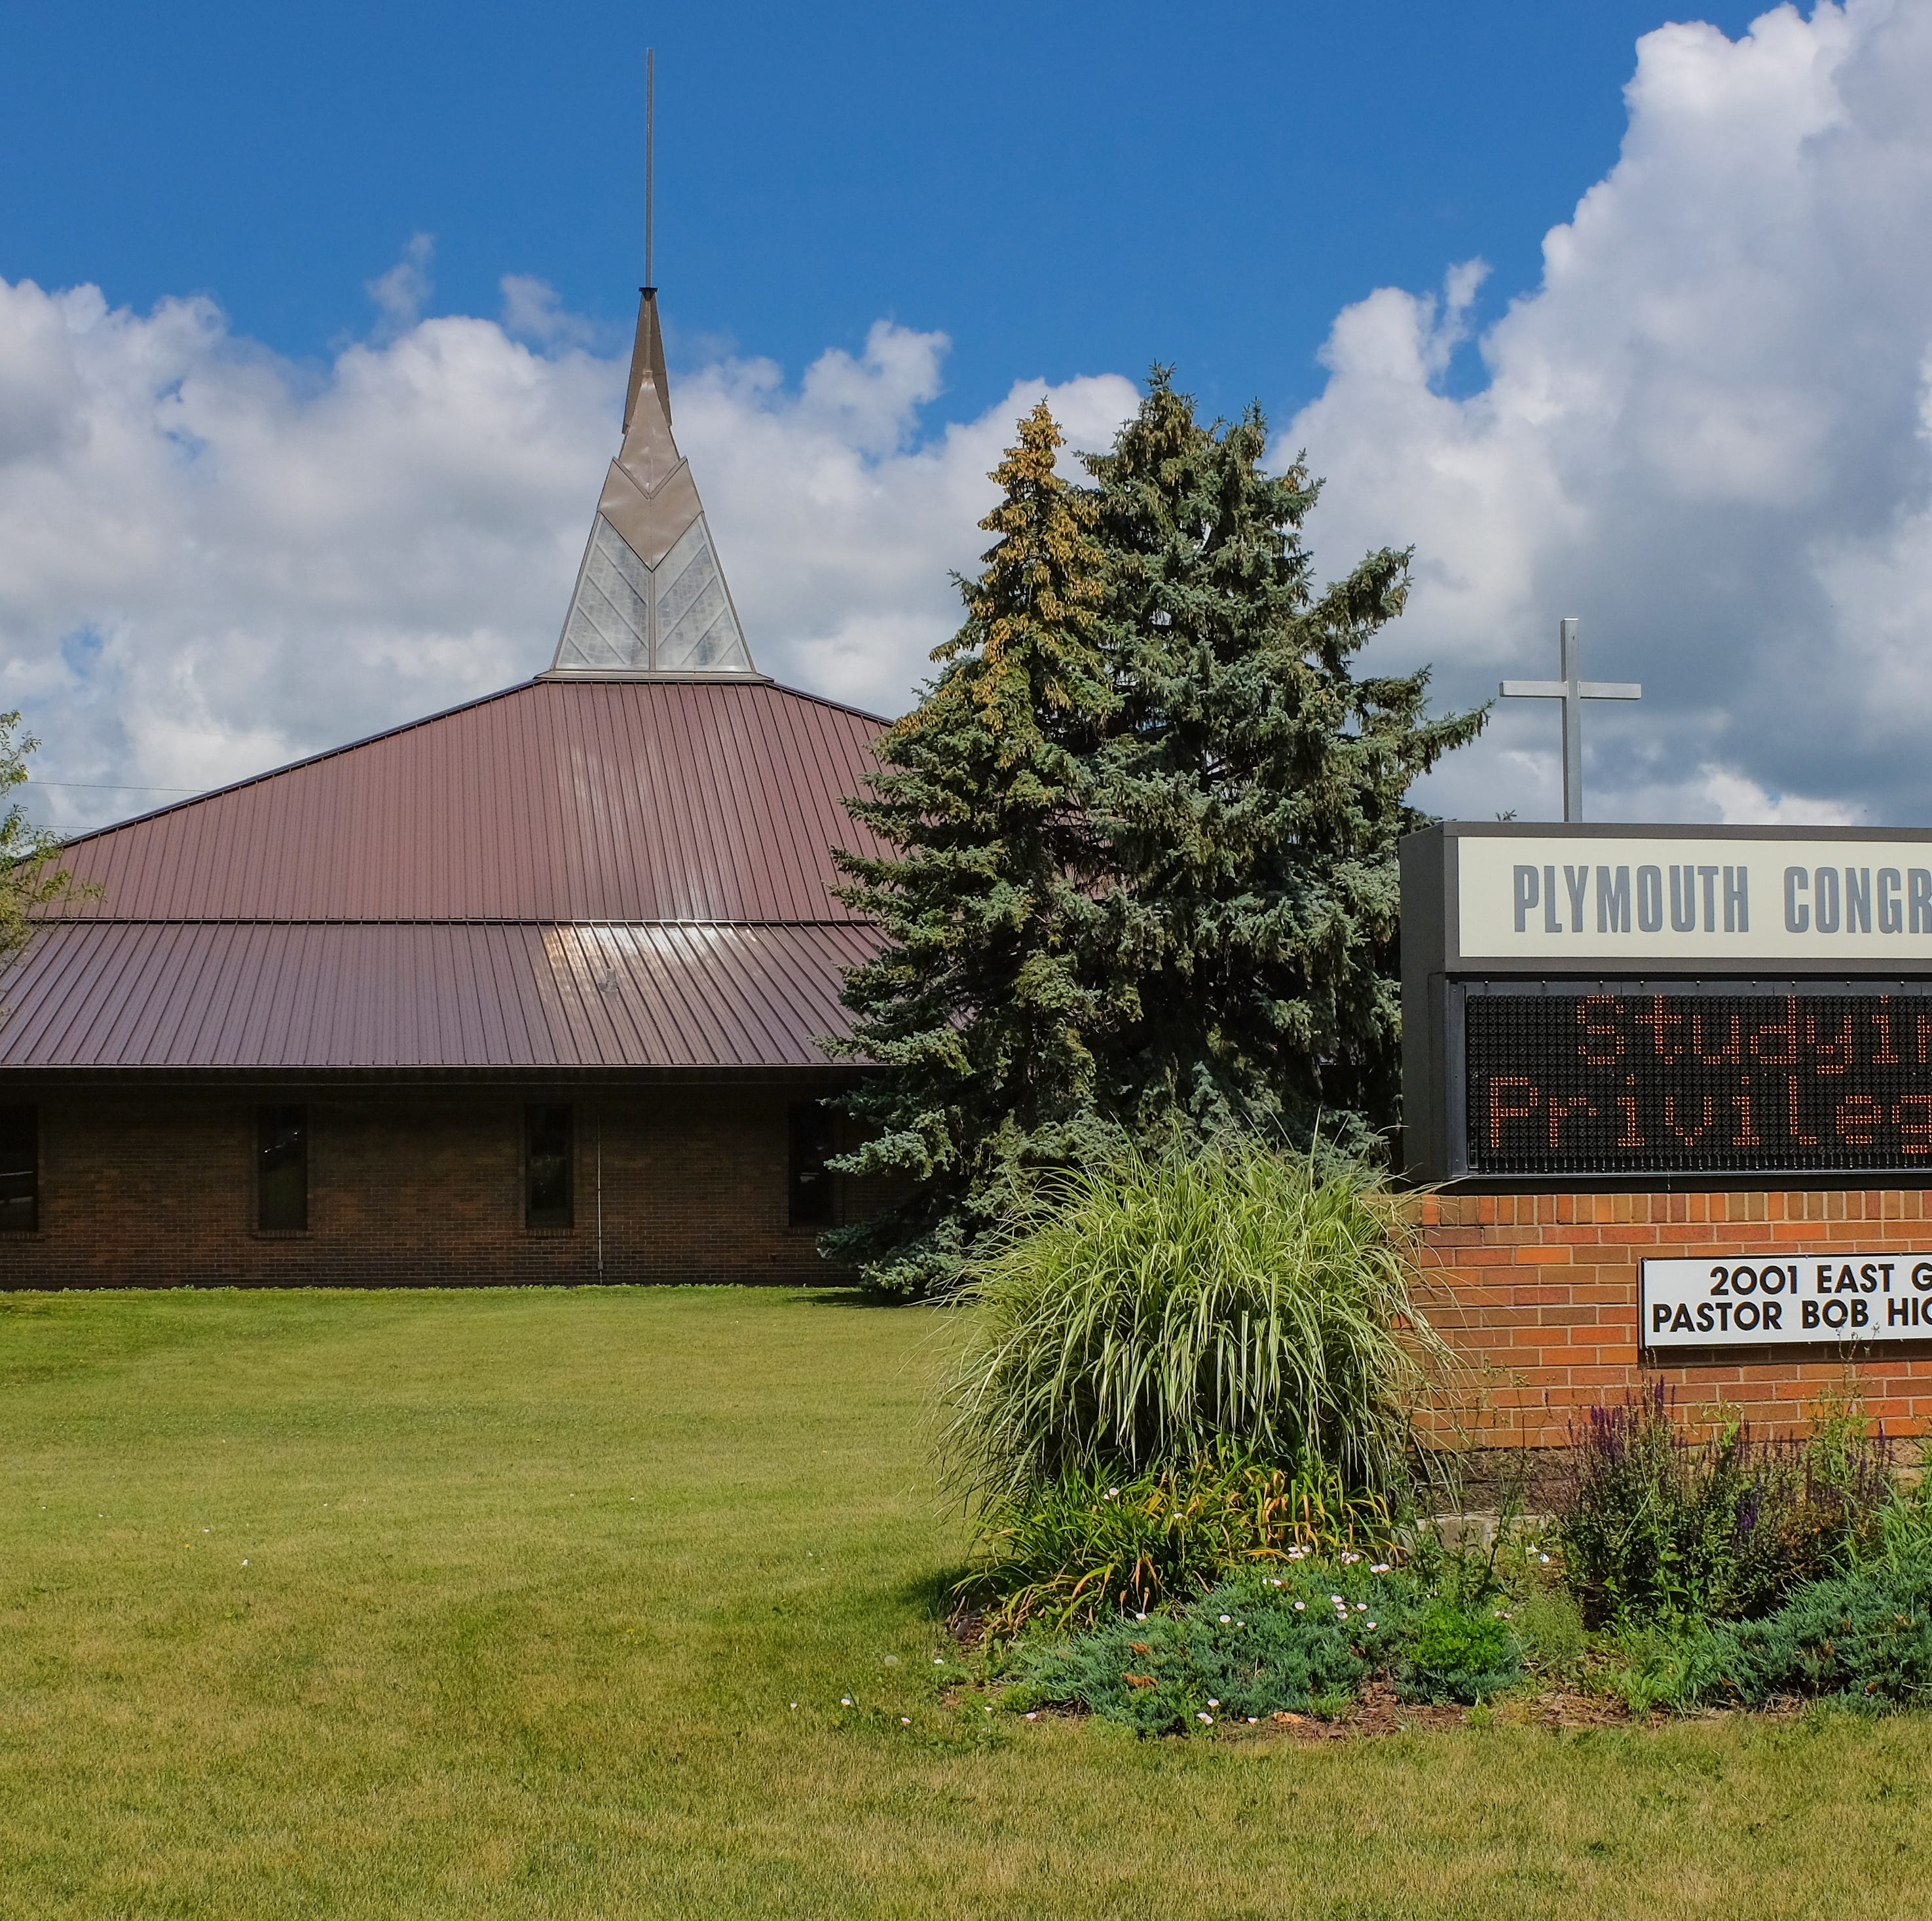 20-student Martin Luther High School buys former church for $2.1 million